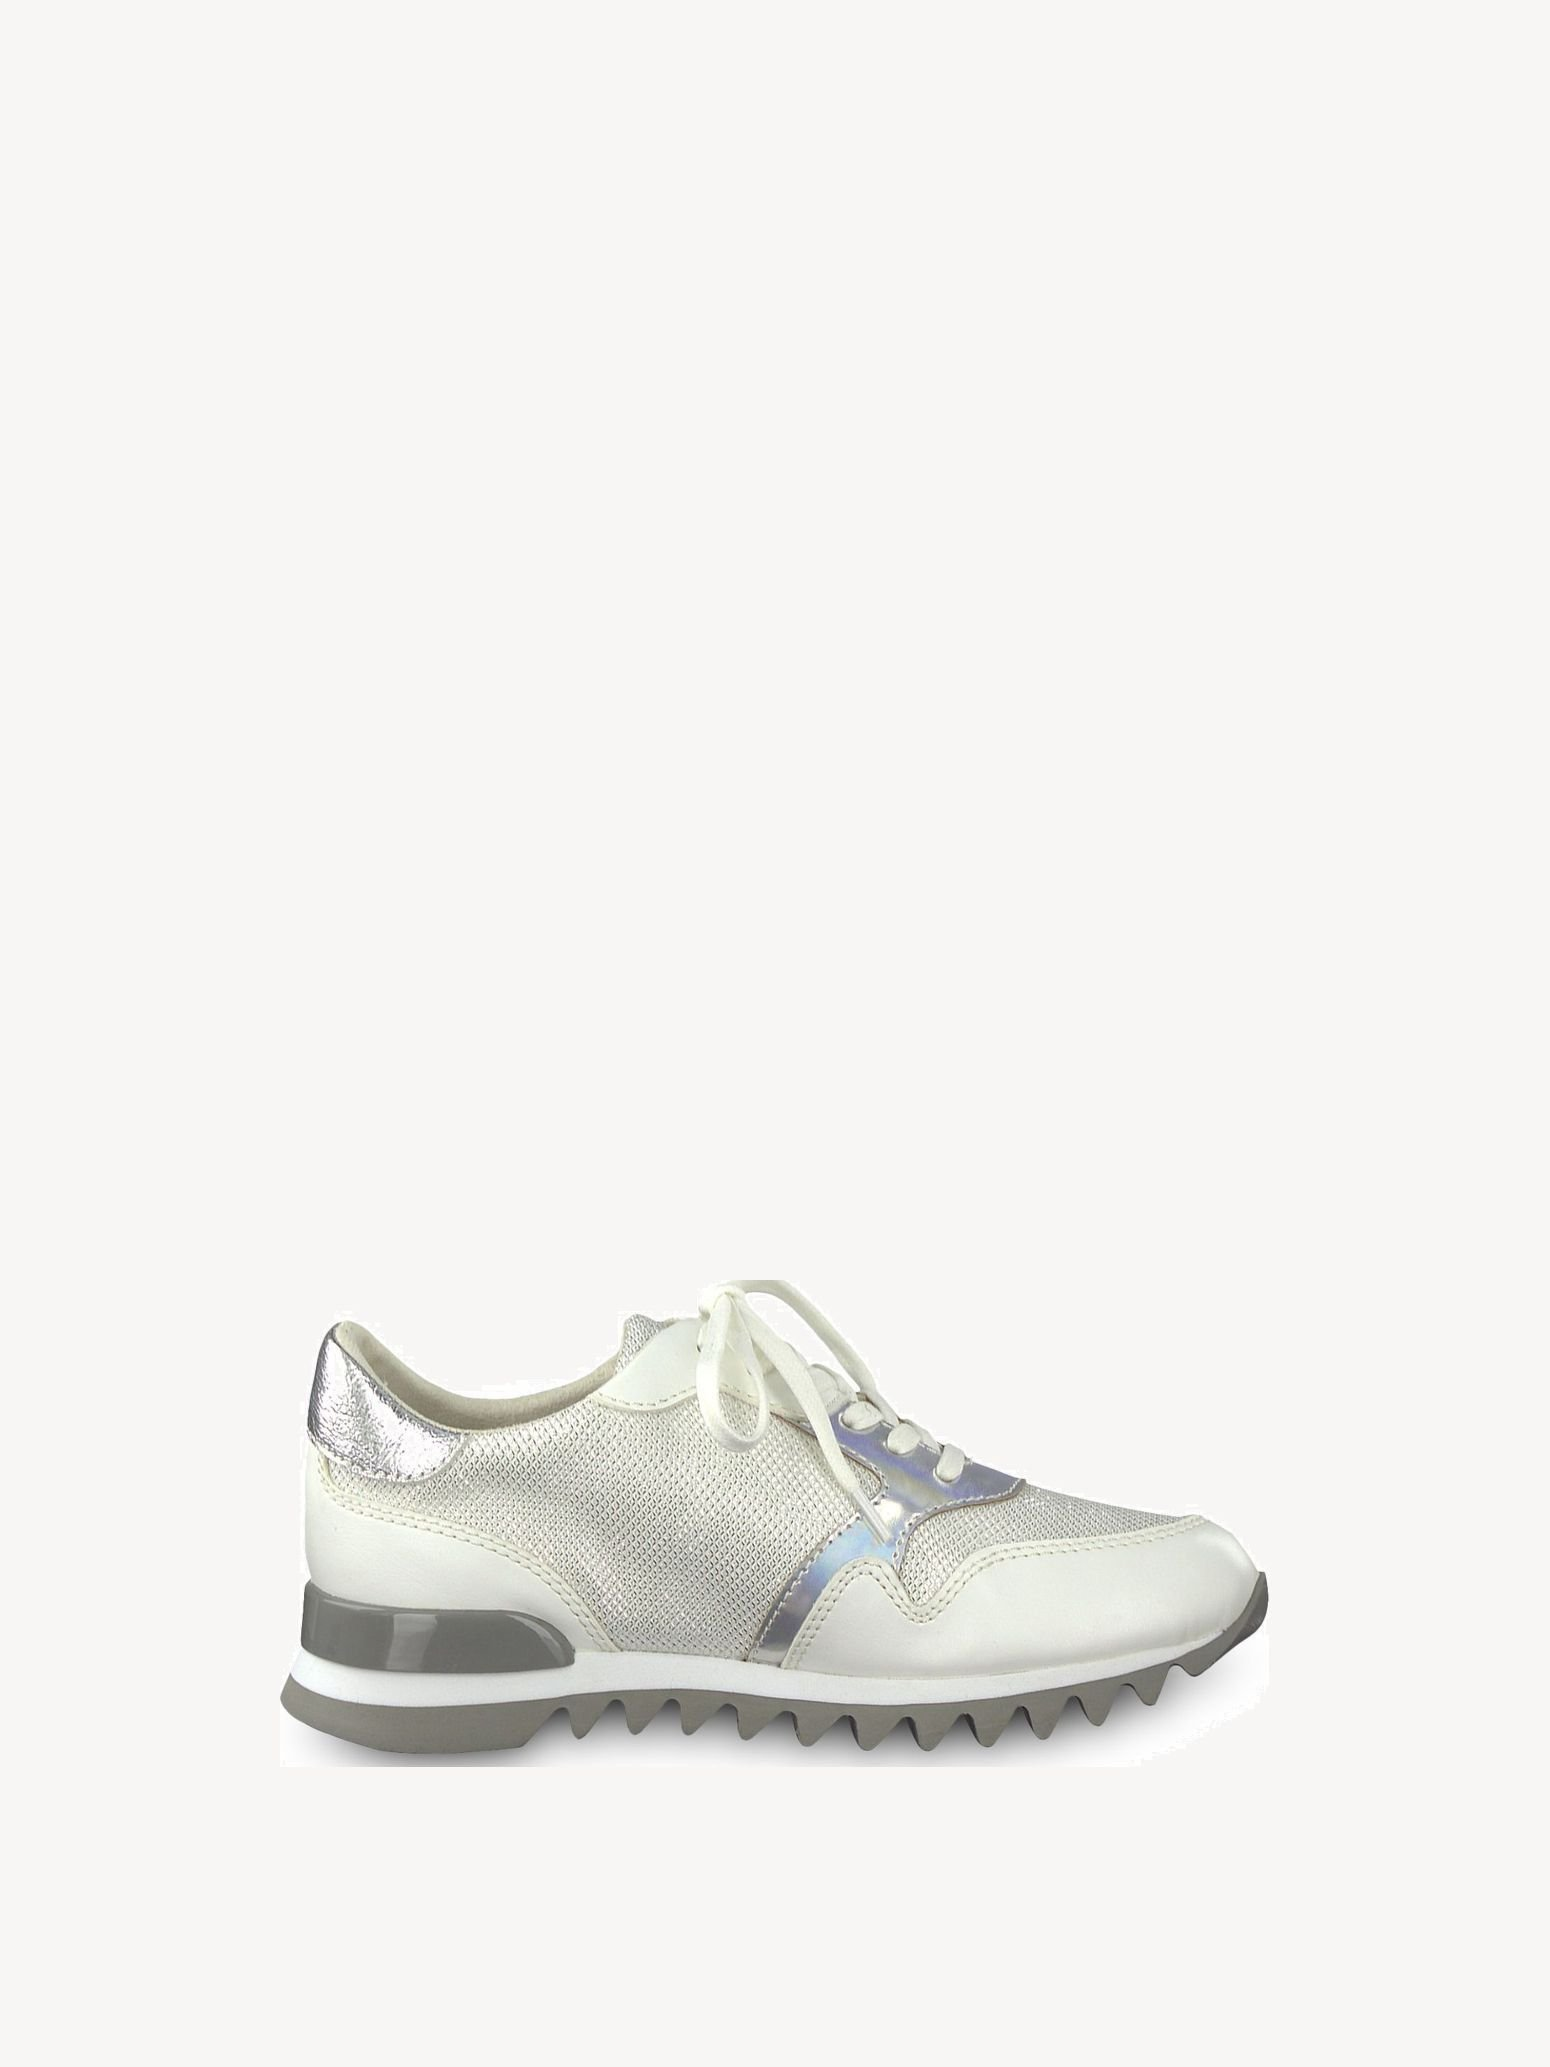 Chaussure basse - blanc, WHITE/SILVER, hi-res